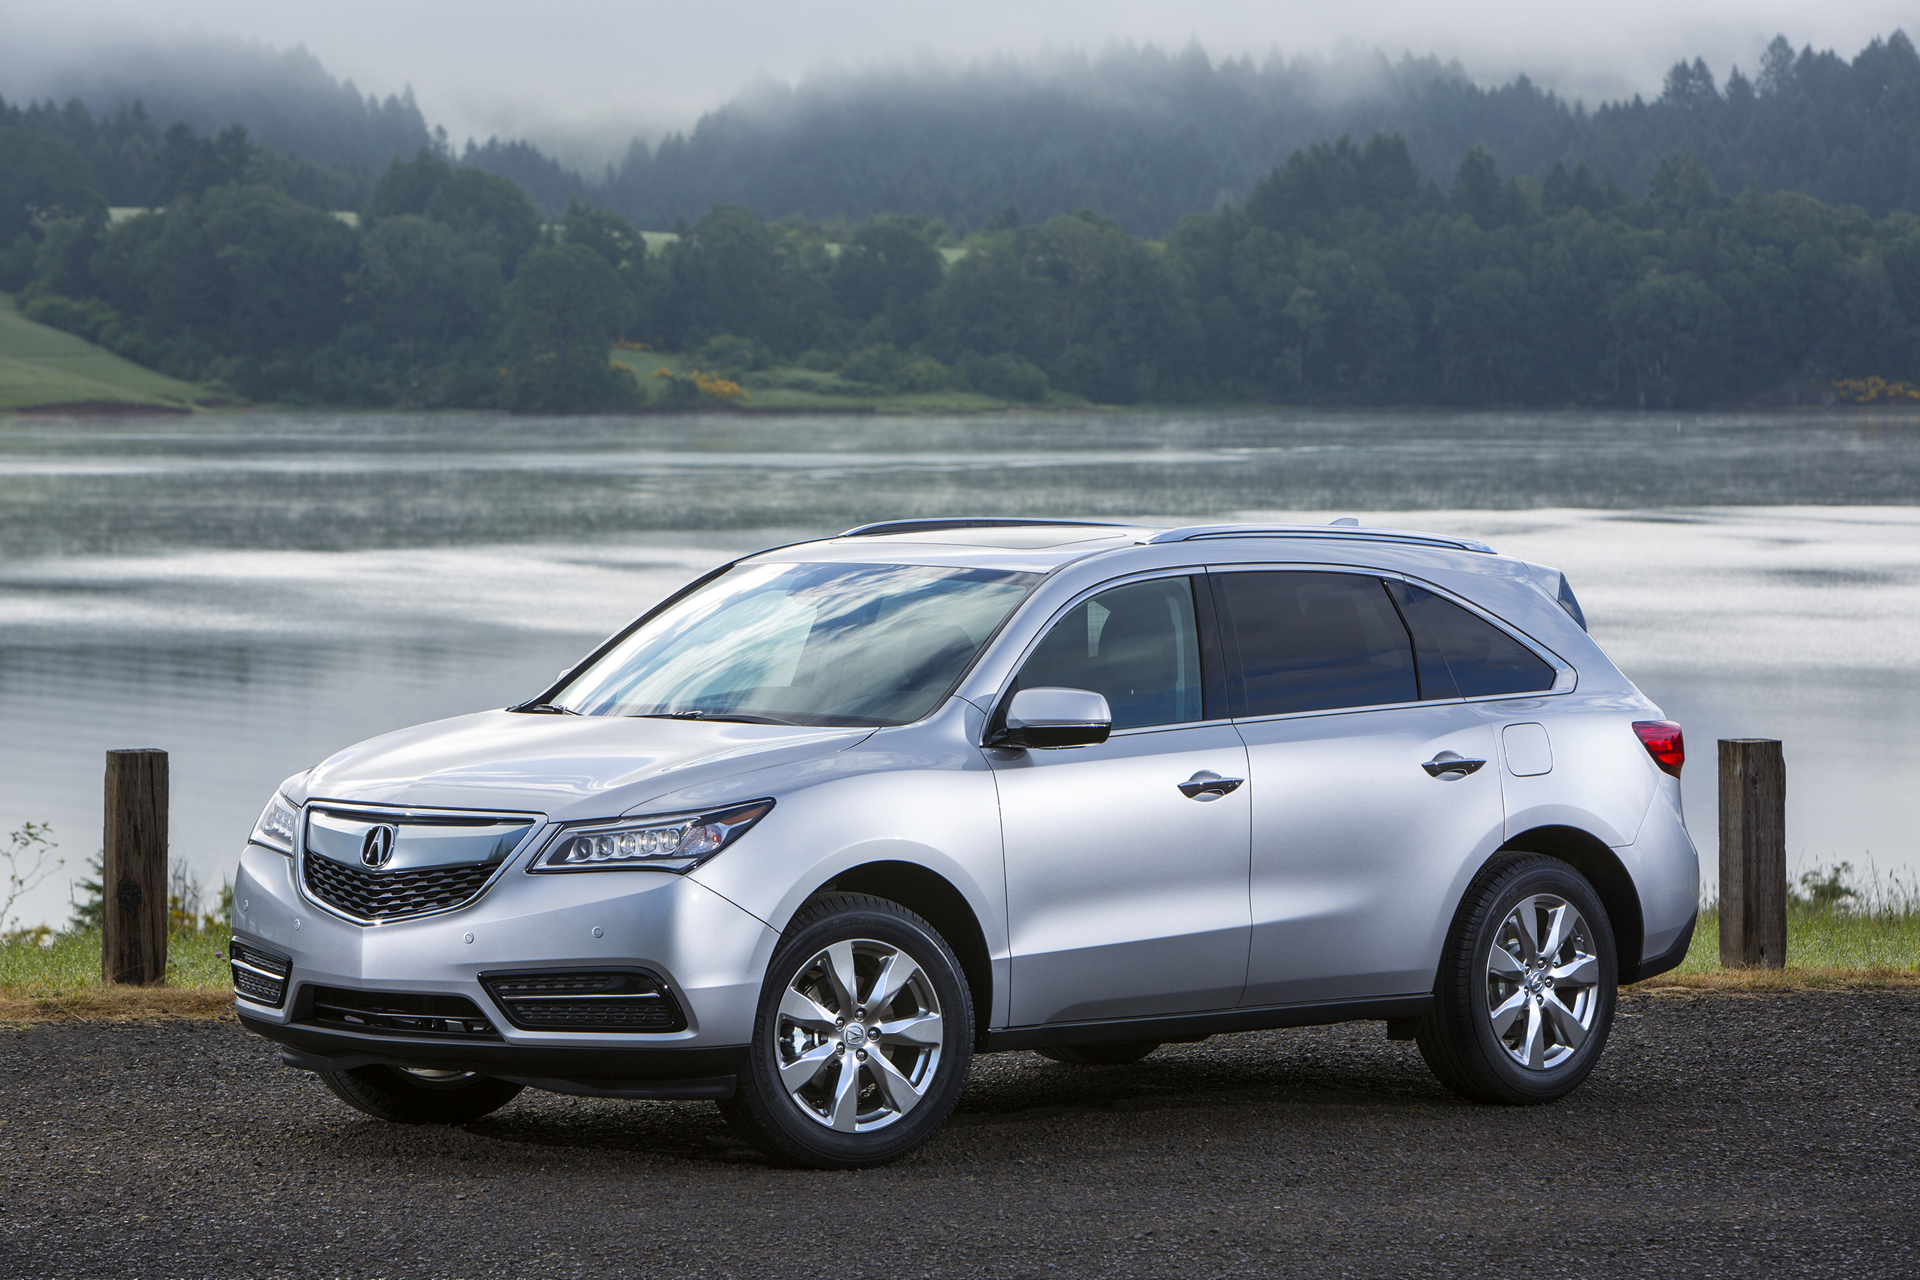 2016 Acura MDX © Honda Motor Co., Ltd.